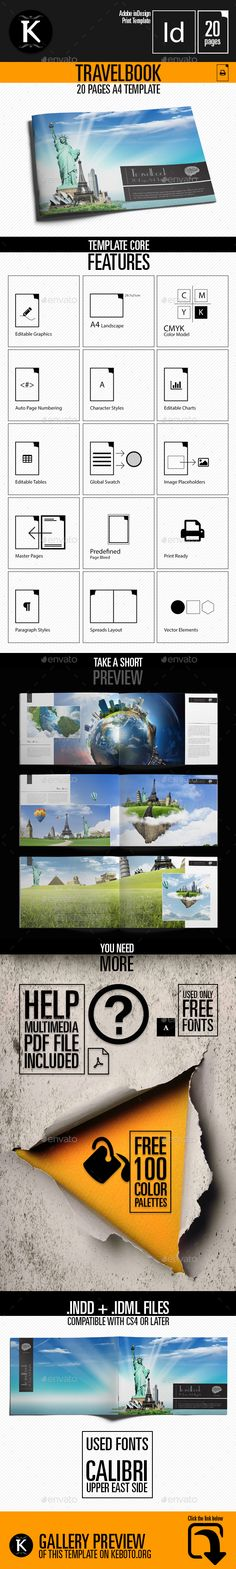 A4 Project Proposal Template Project proposal, Proposal - travel proposal template